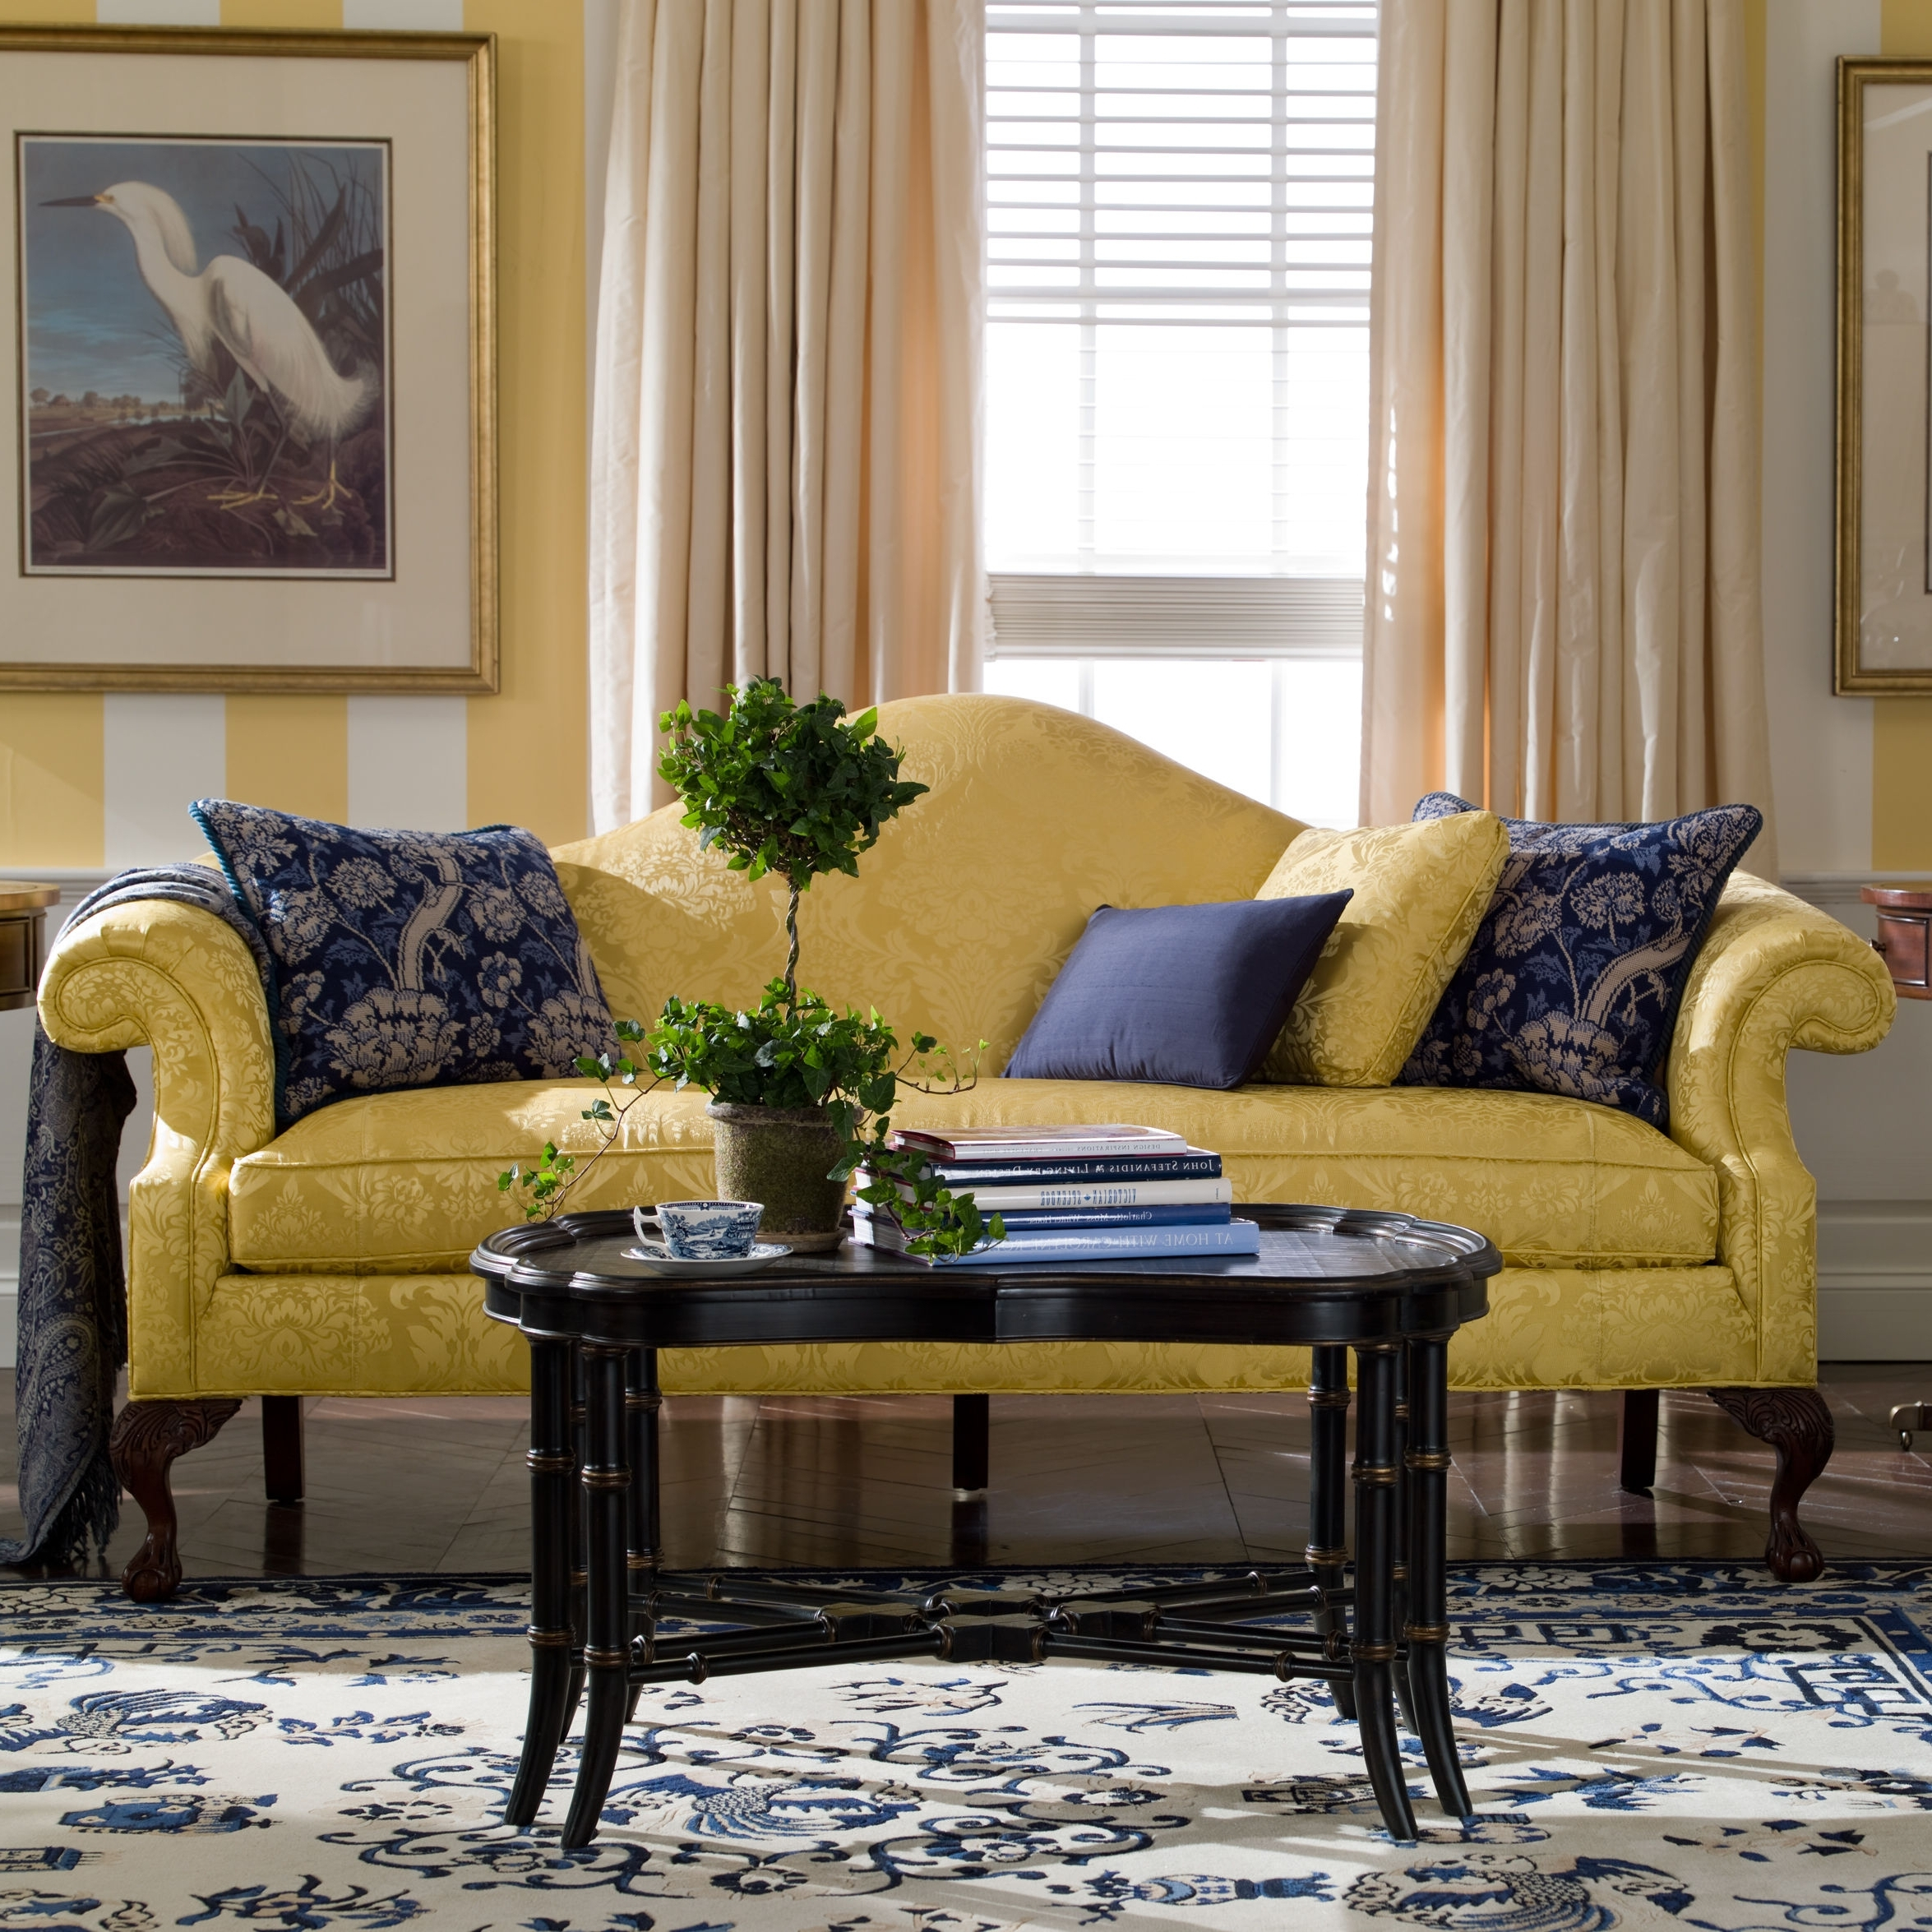 Ethan Allen Sofas And Chairs Within Fashionable Hepburn Sofa – Ethan Allen (With Different Fabric) (View 5 of 20)